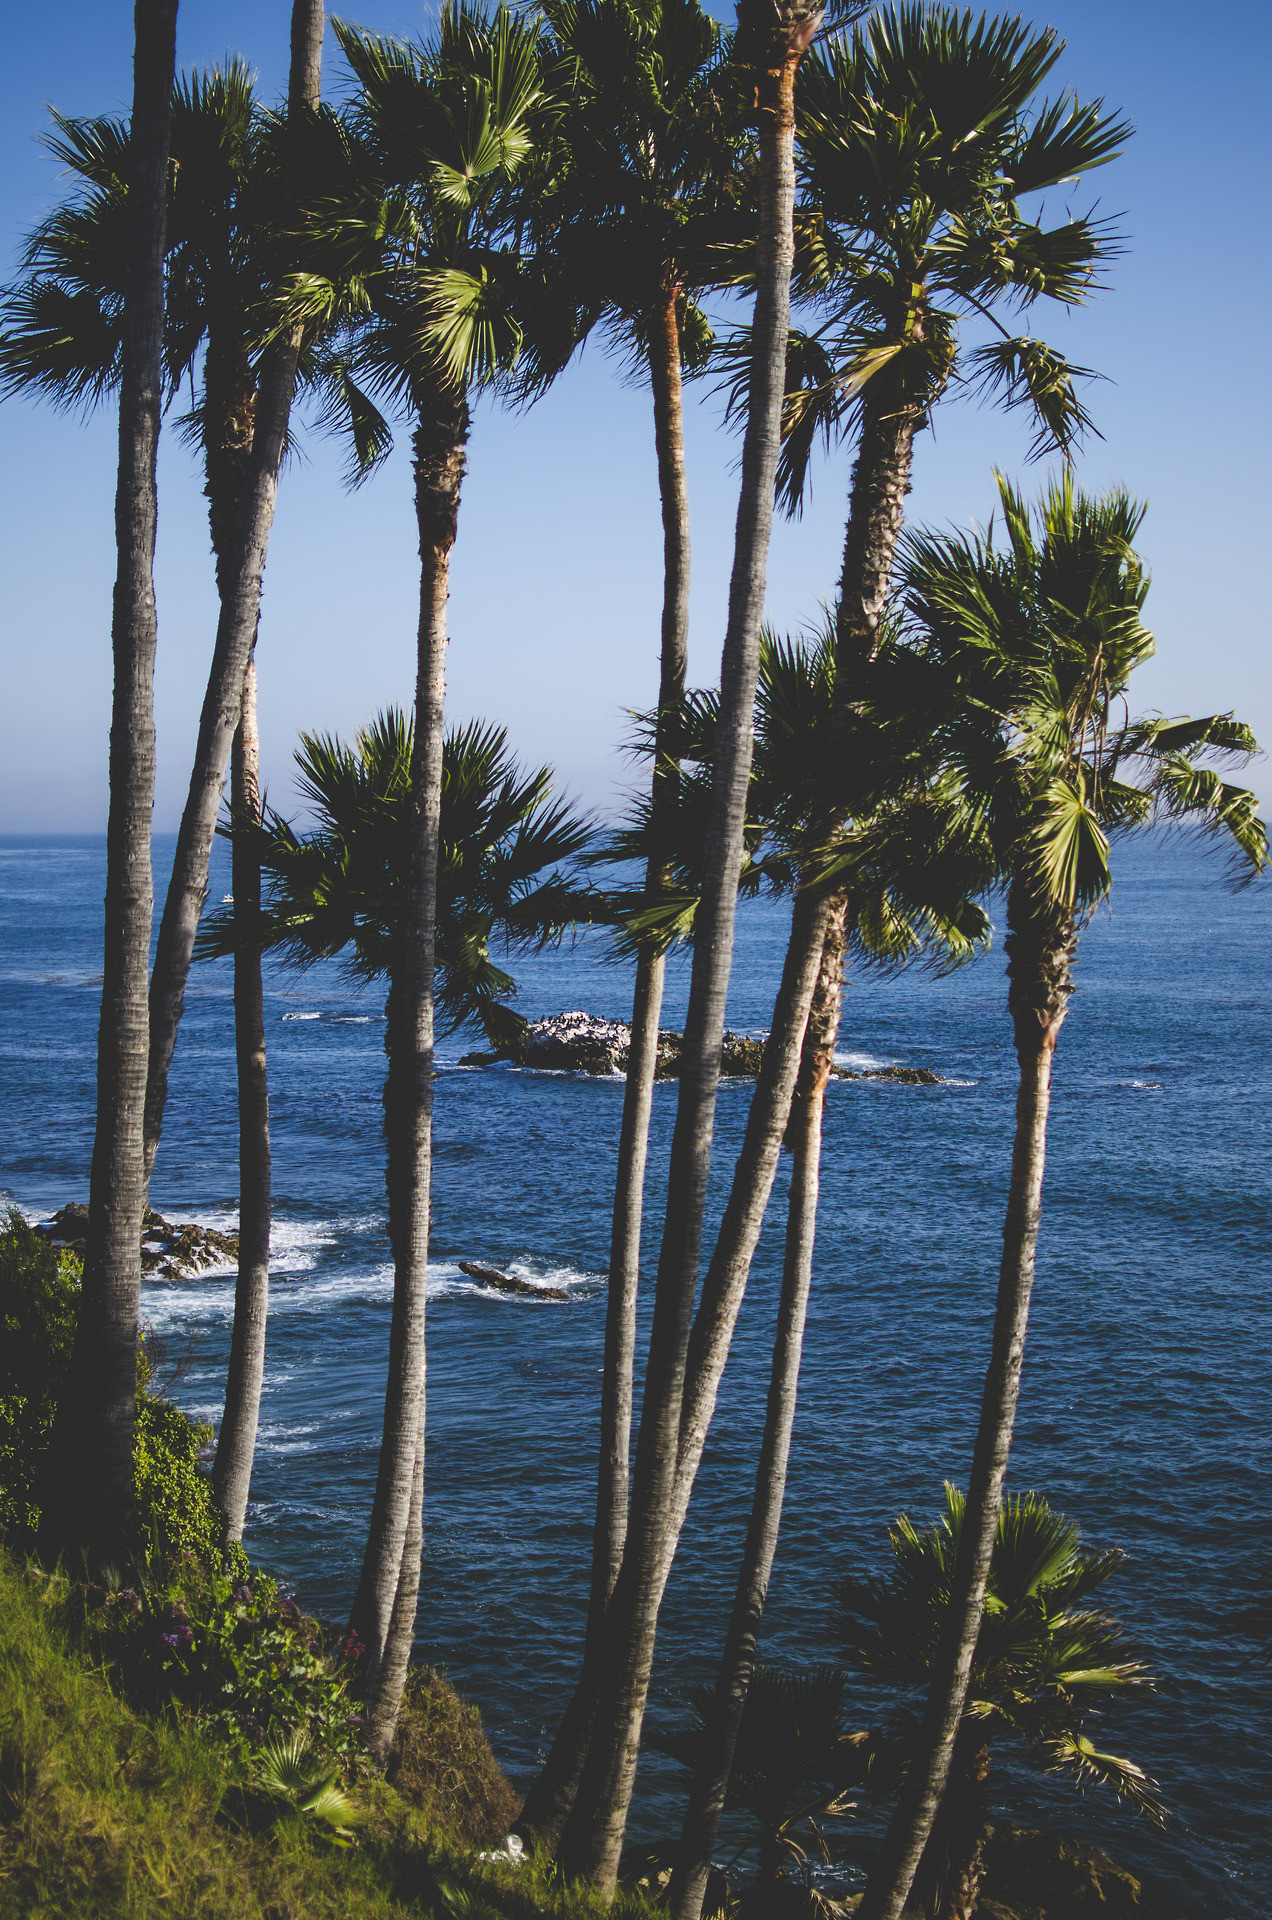 Palm Tree Wallpaper For Iphone X Laguna Beach Wallpaper 183 ① Wallpapertag